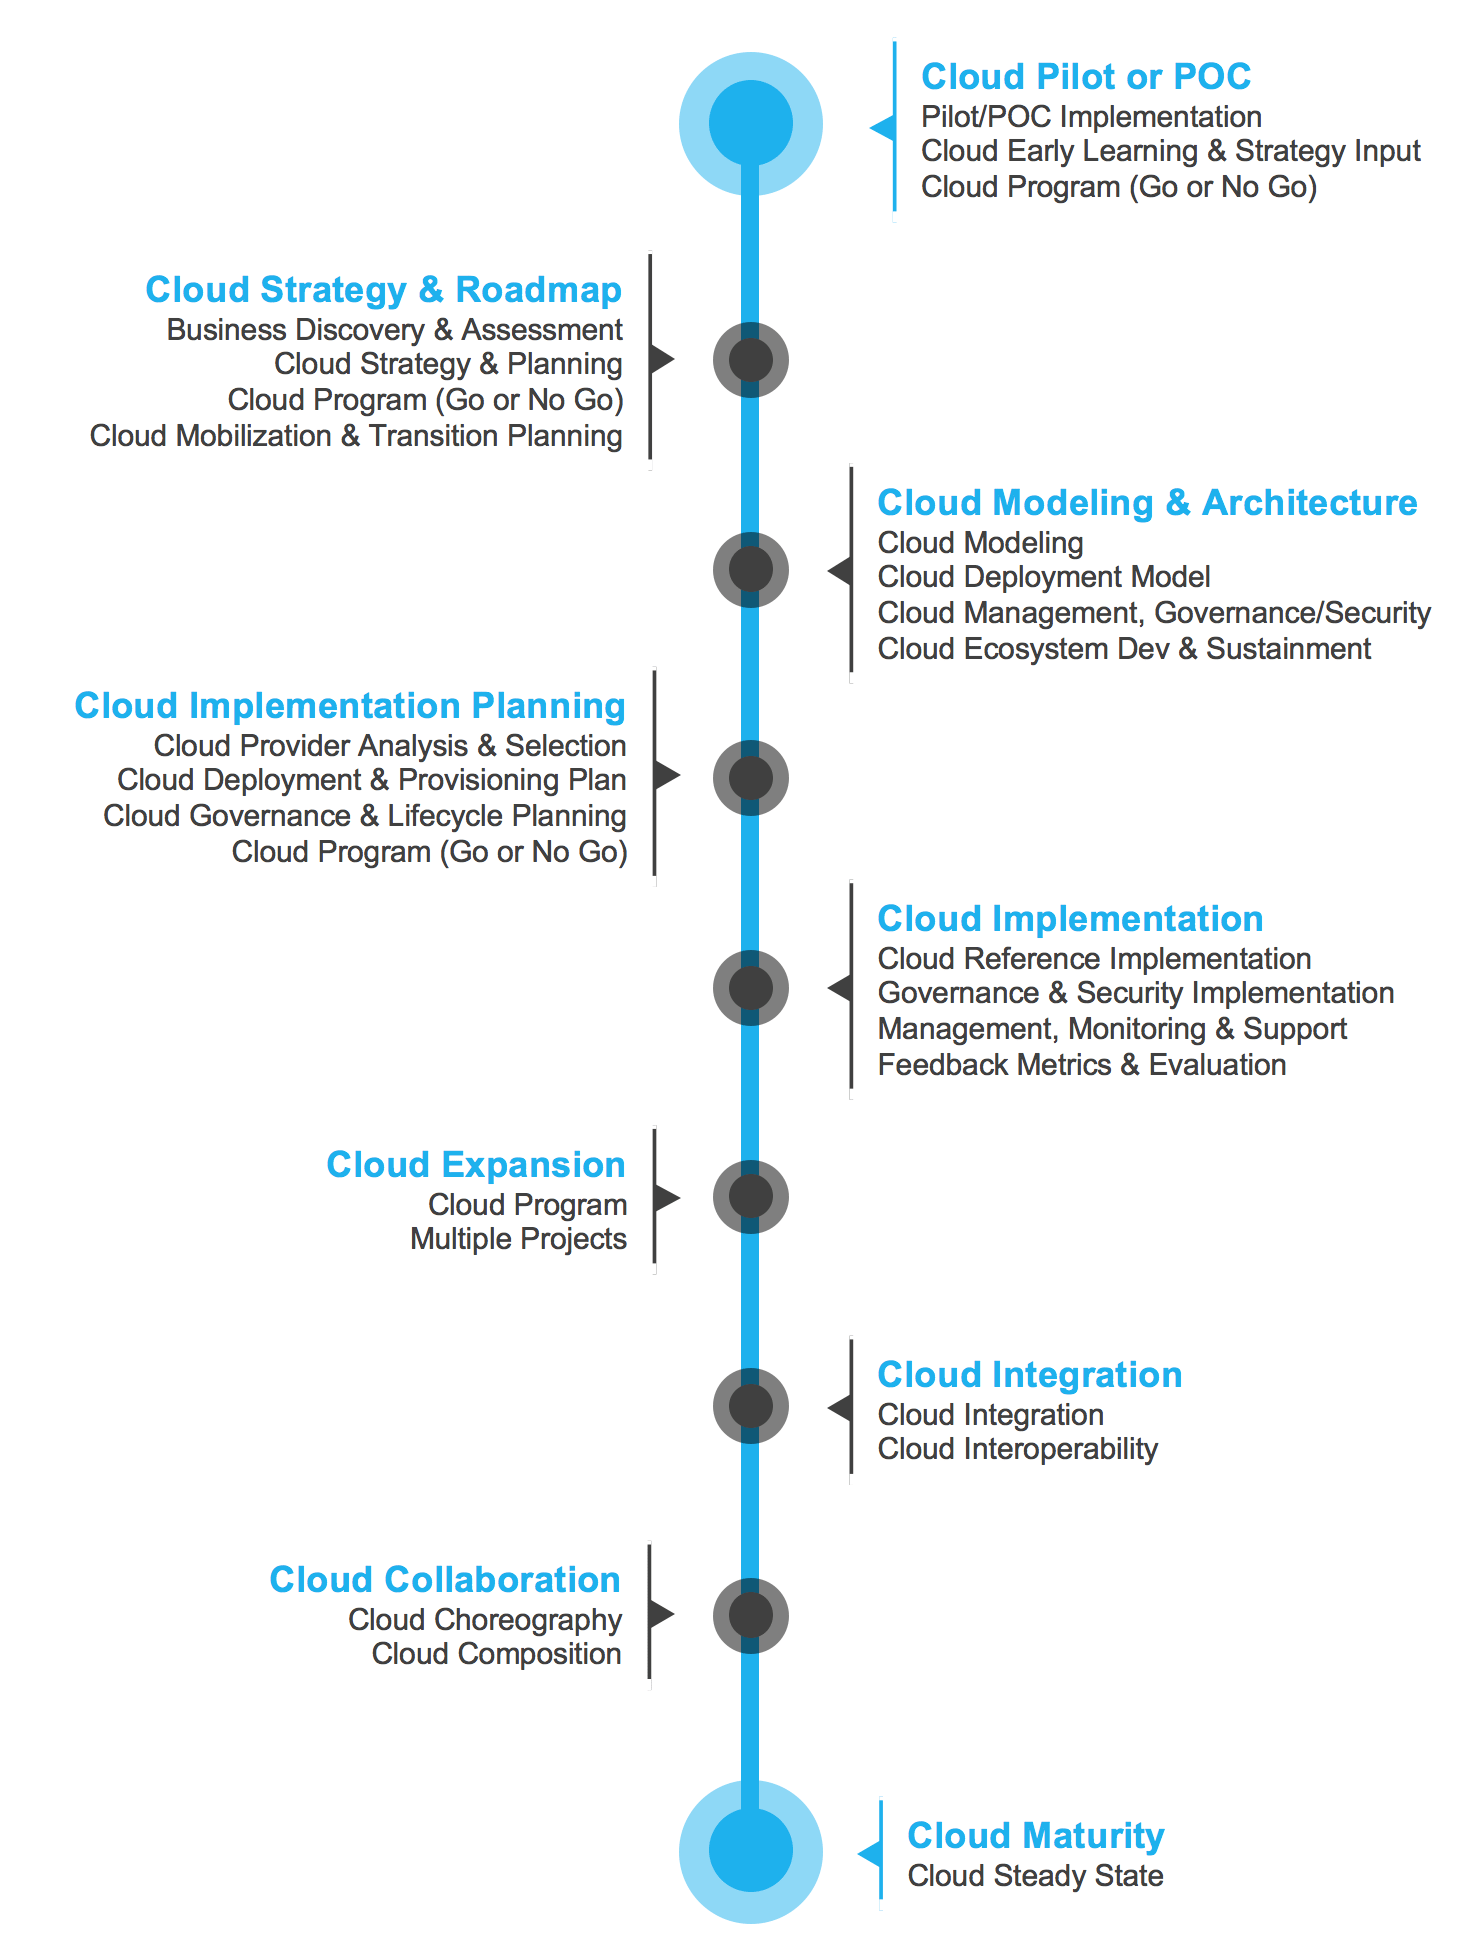 The Cloud Adoption Lifecycle